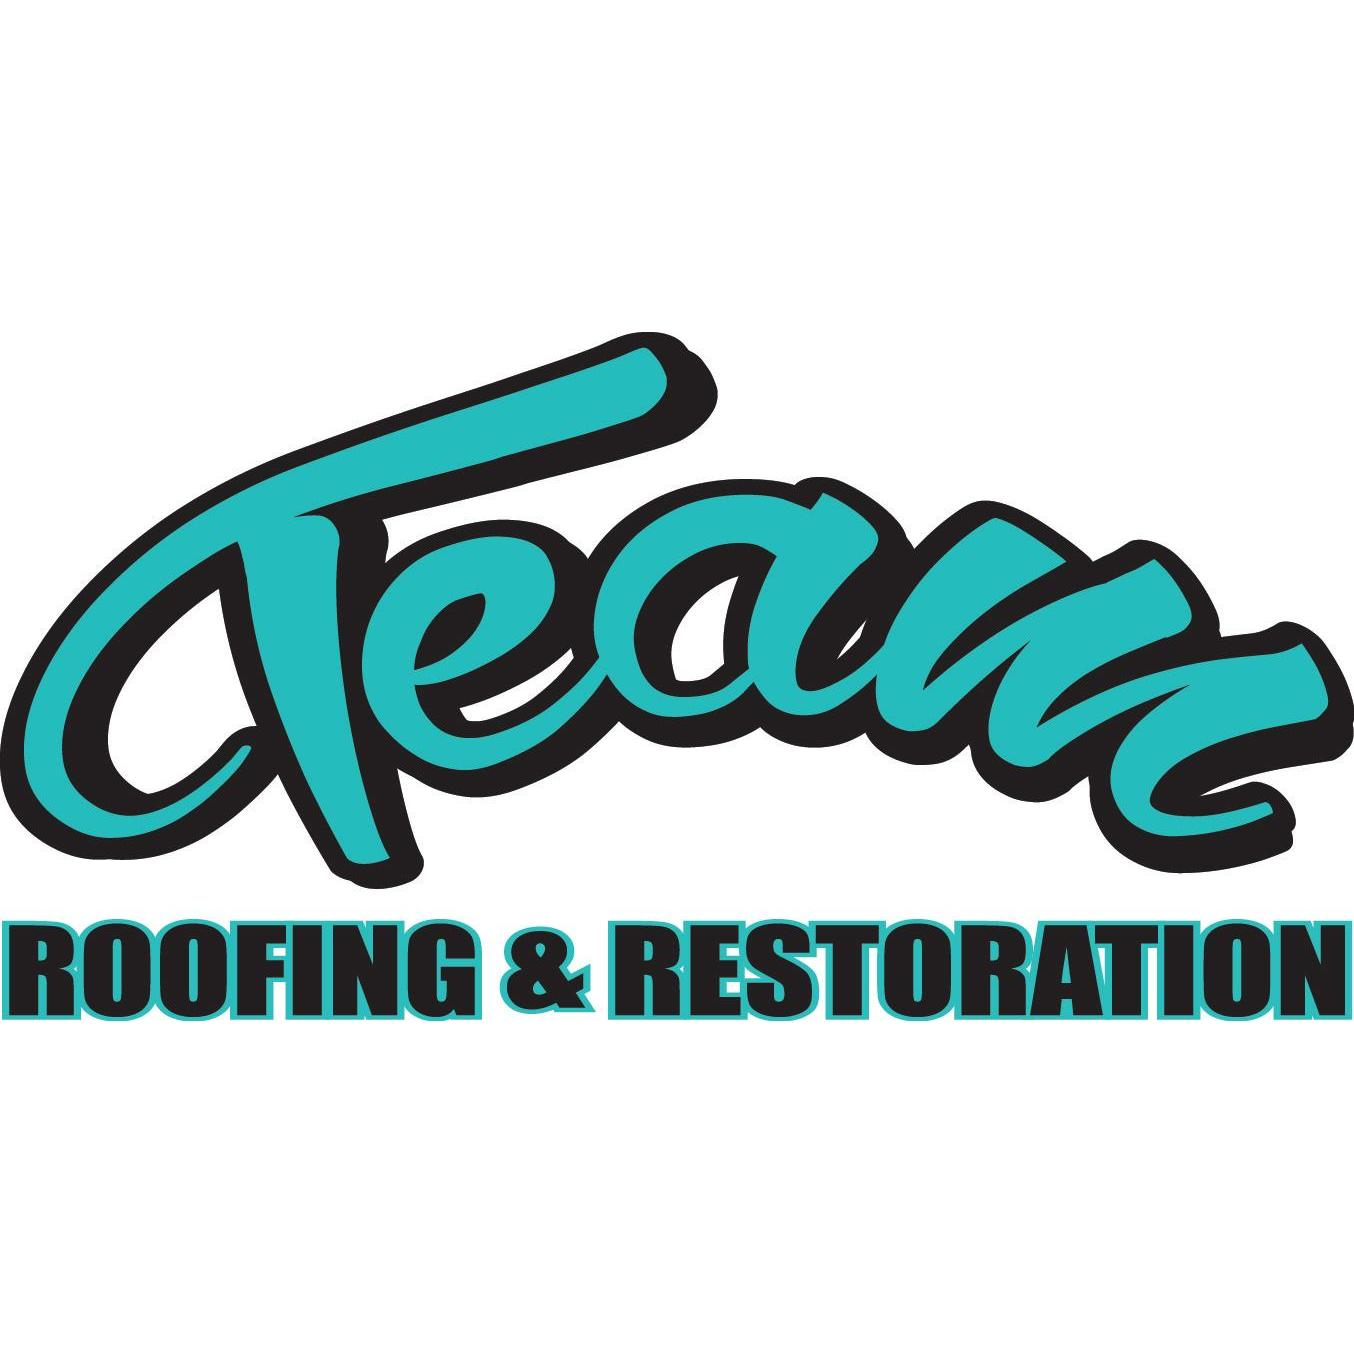 Team Roofing and Restoration